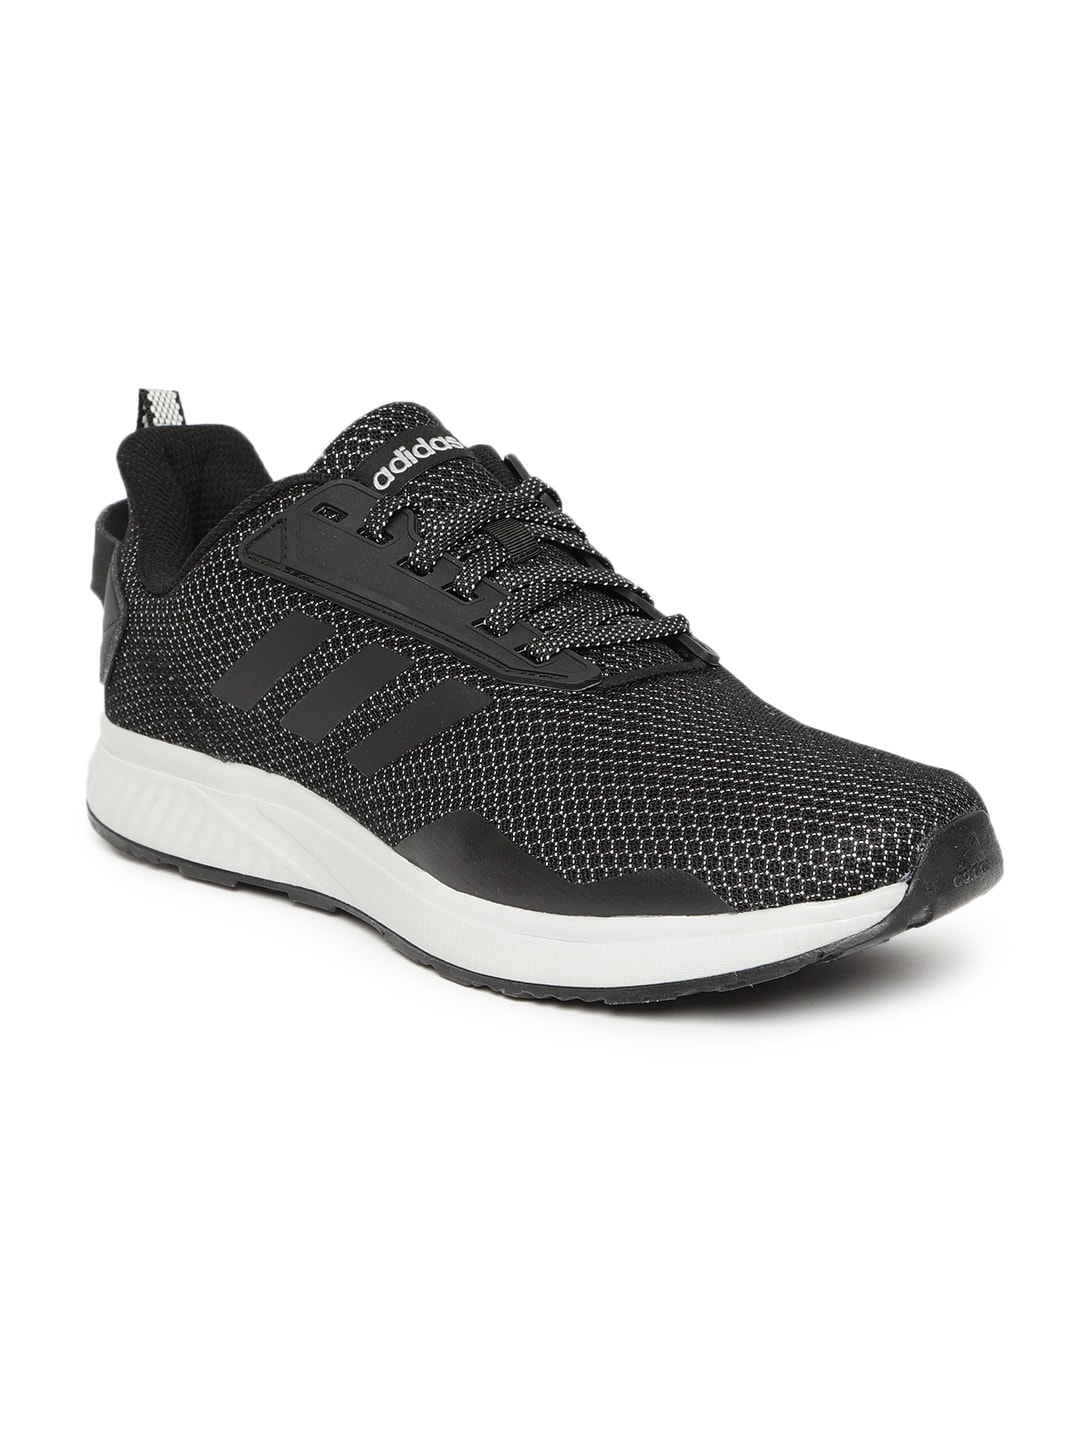 best website bff71 7d064 Adidas Spring - Buy Adidas Spring online in India